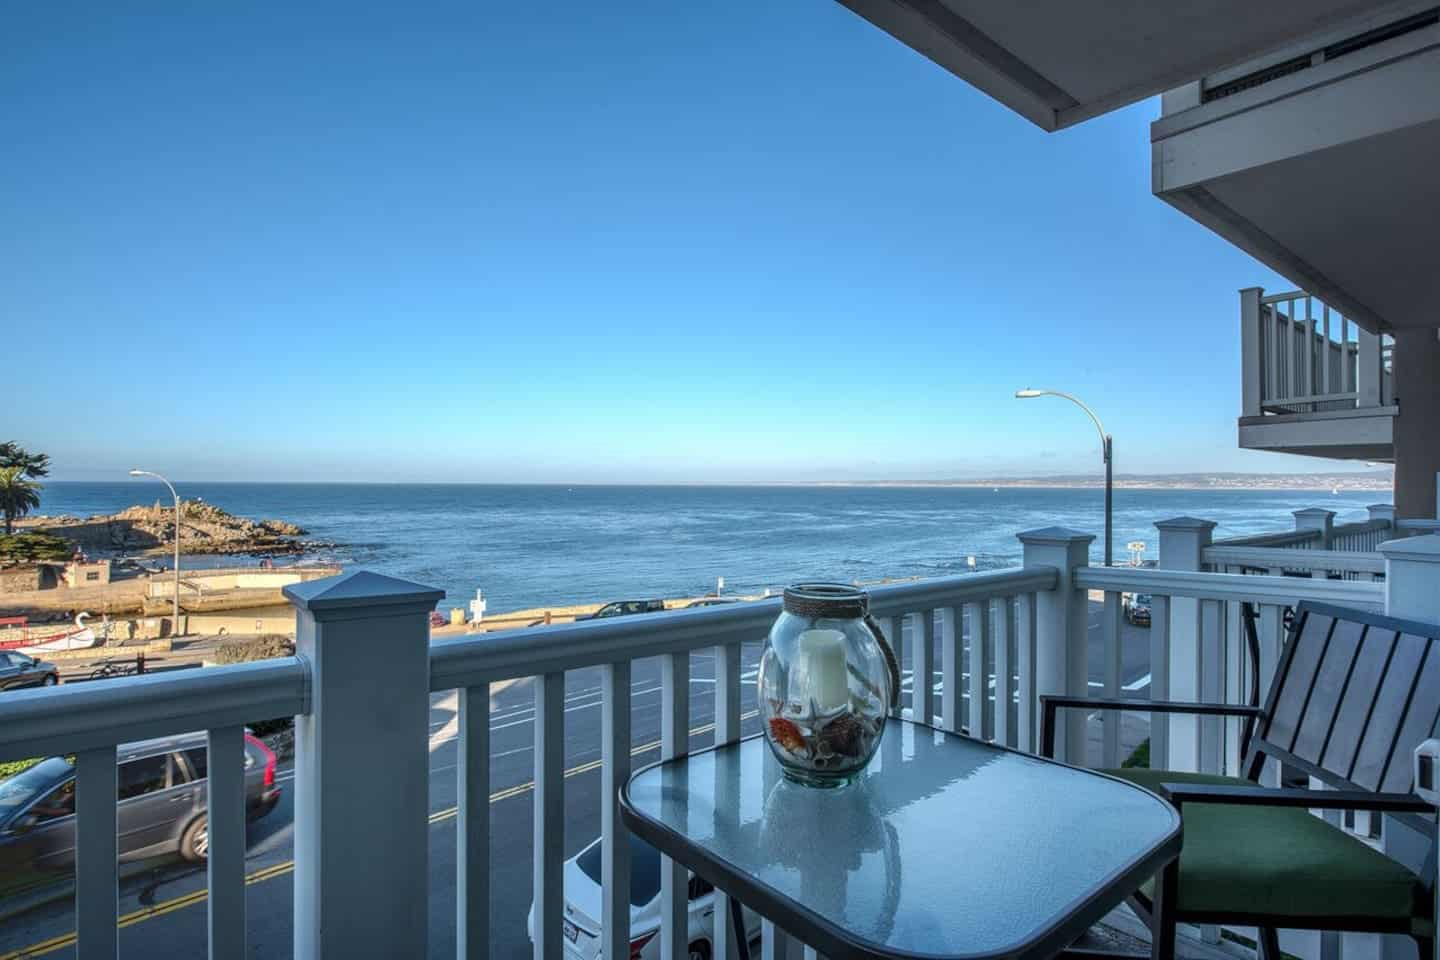 Image of Airbnb rental in Monterey California